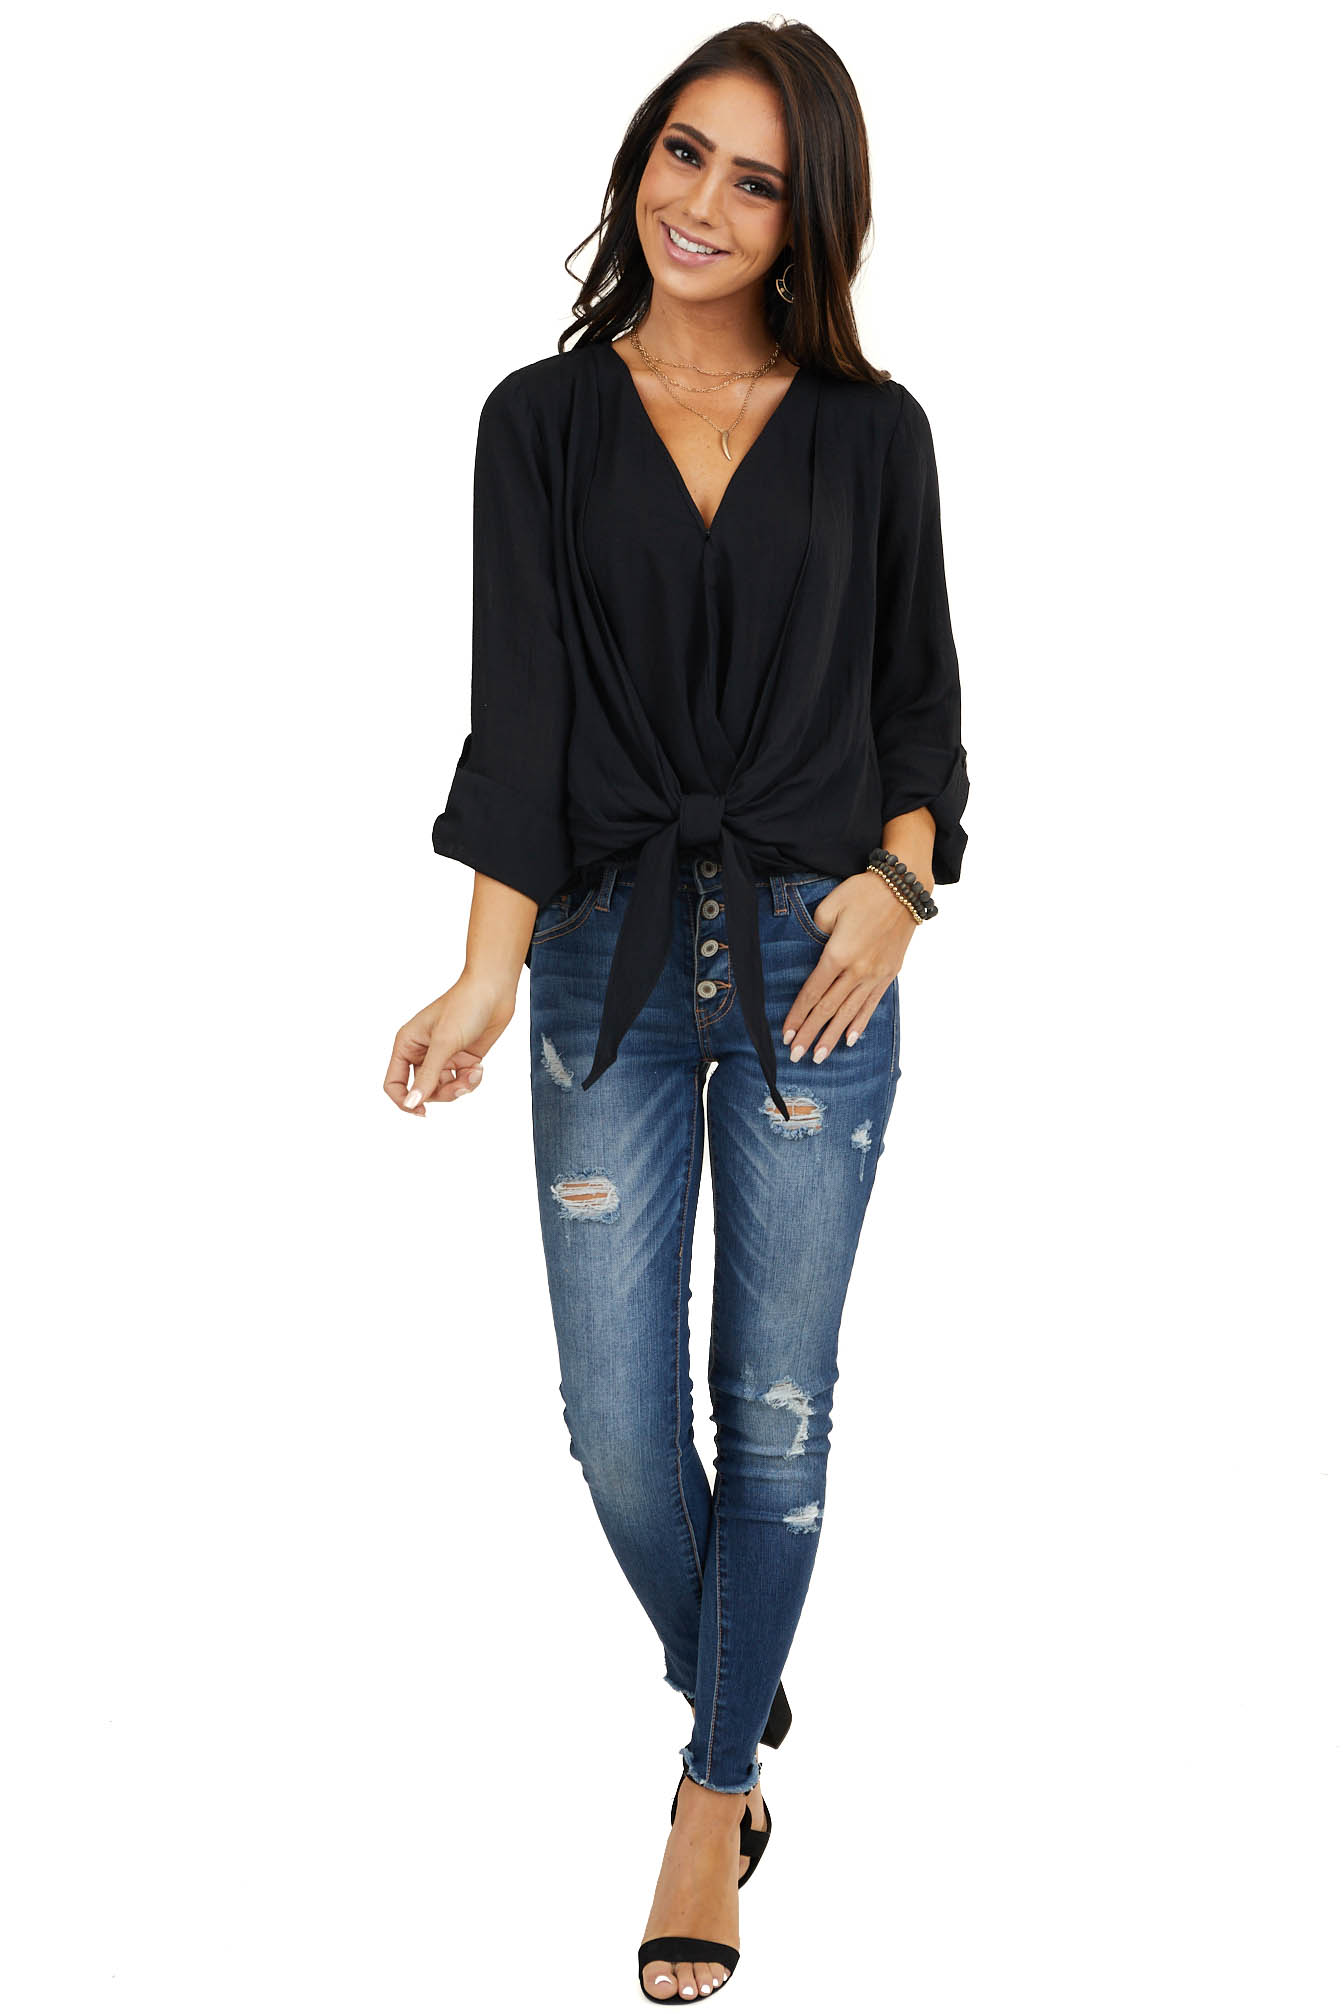 Onyx Black Surplice Top with Front Tie and Button Closure